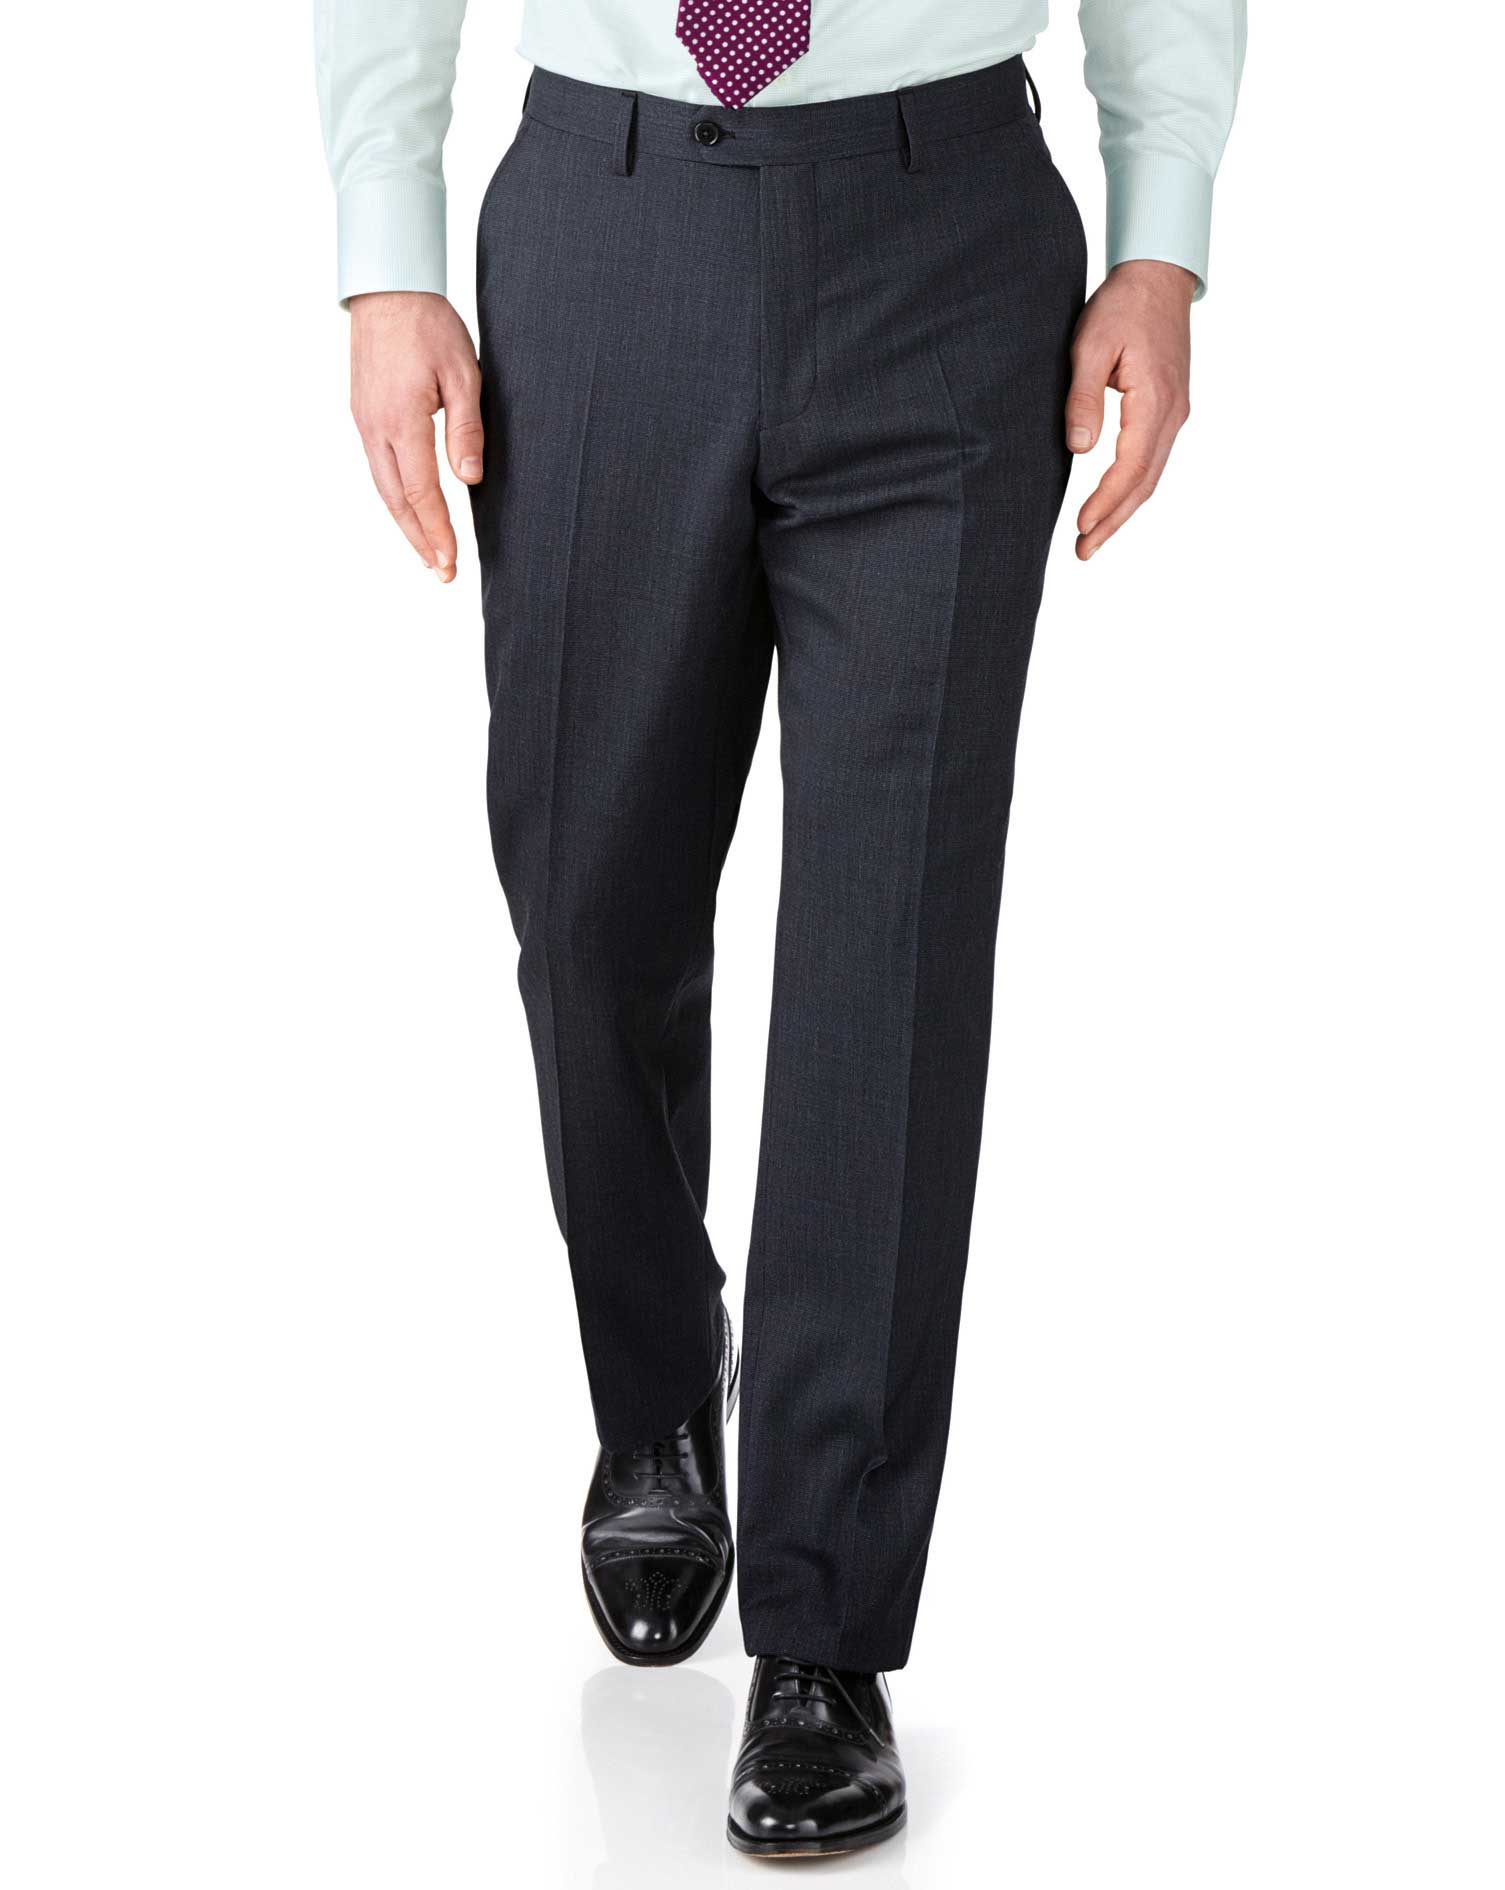 Navy Slim Fit End-On-End Business Suit Trousers Size W42 L34 by Charles Tyrwhitt